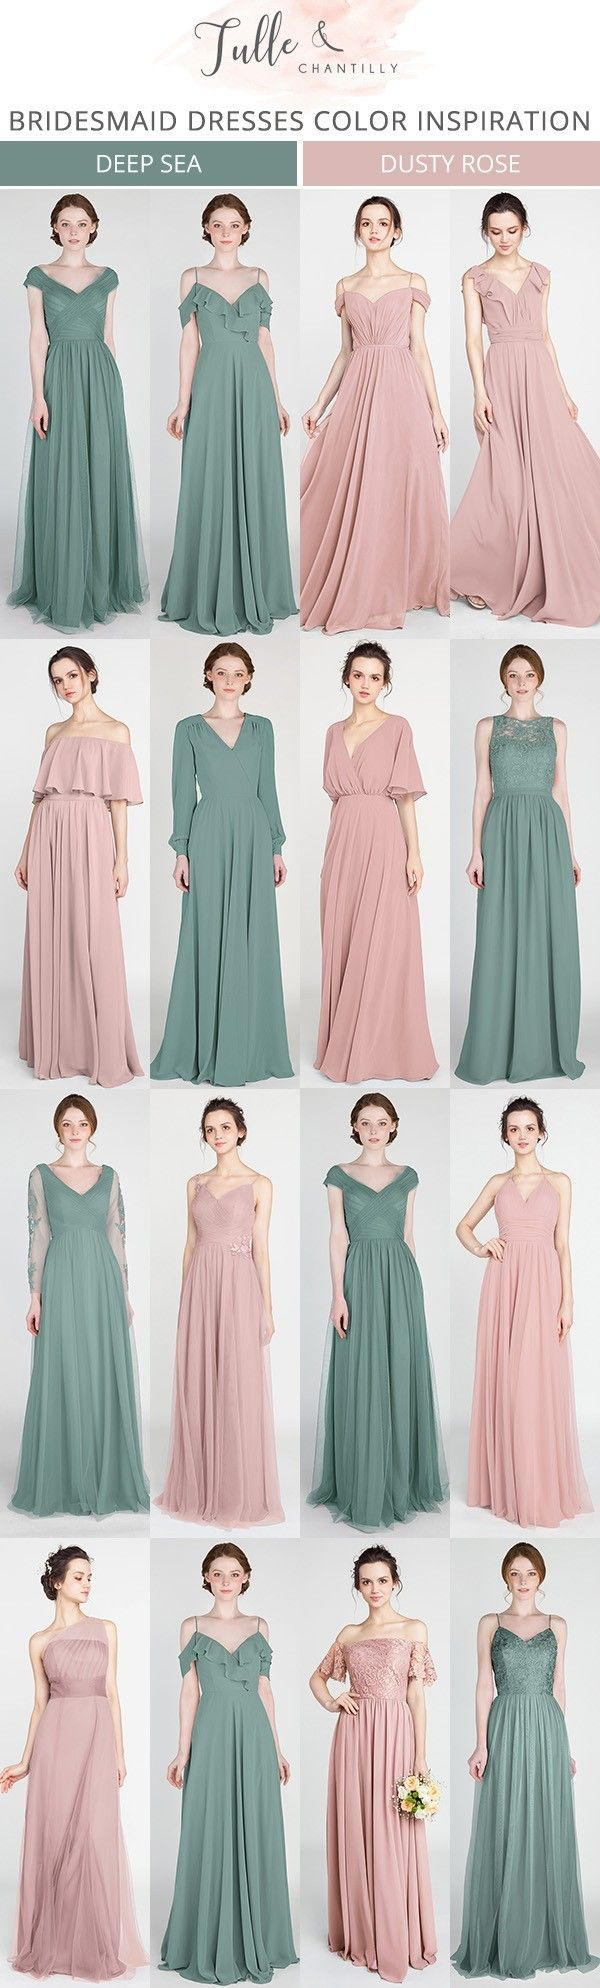 greenery and dusty rose bridesmaid dresses #bridalparty #bridesmaiddresses